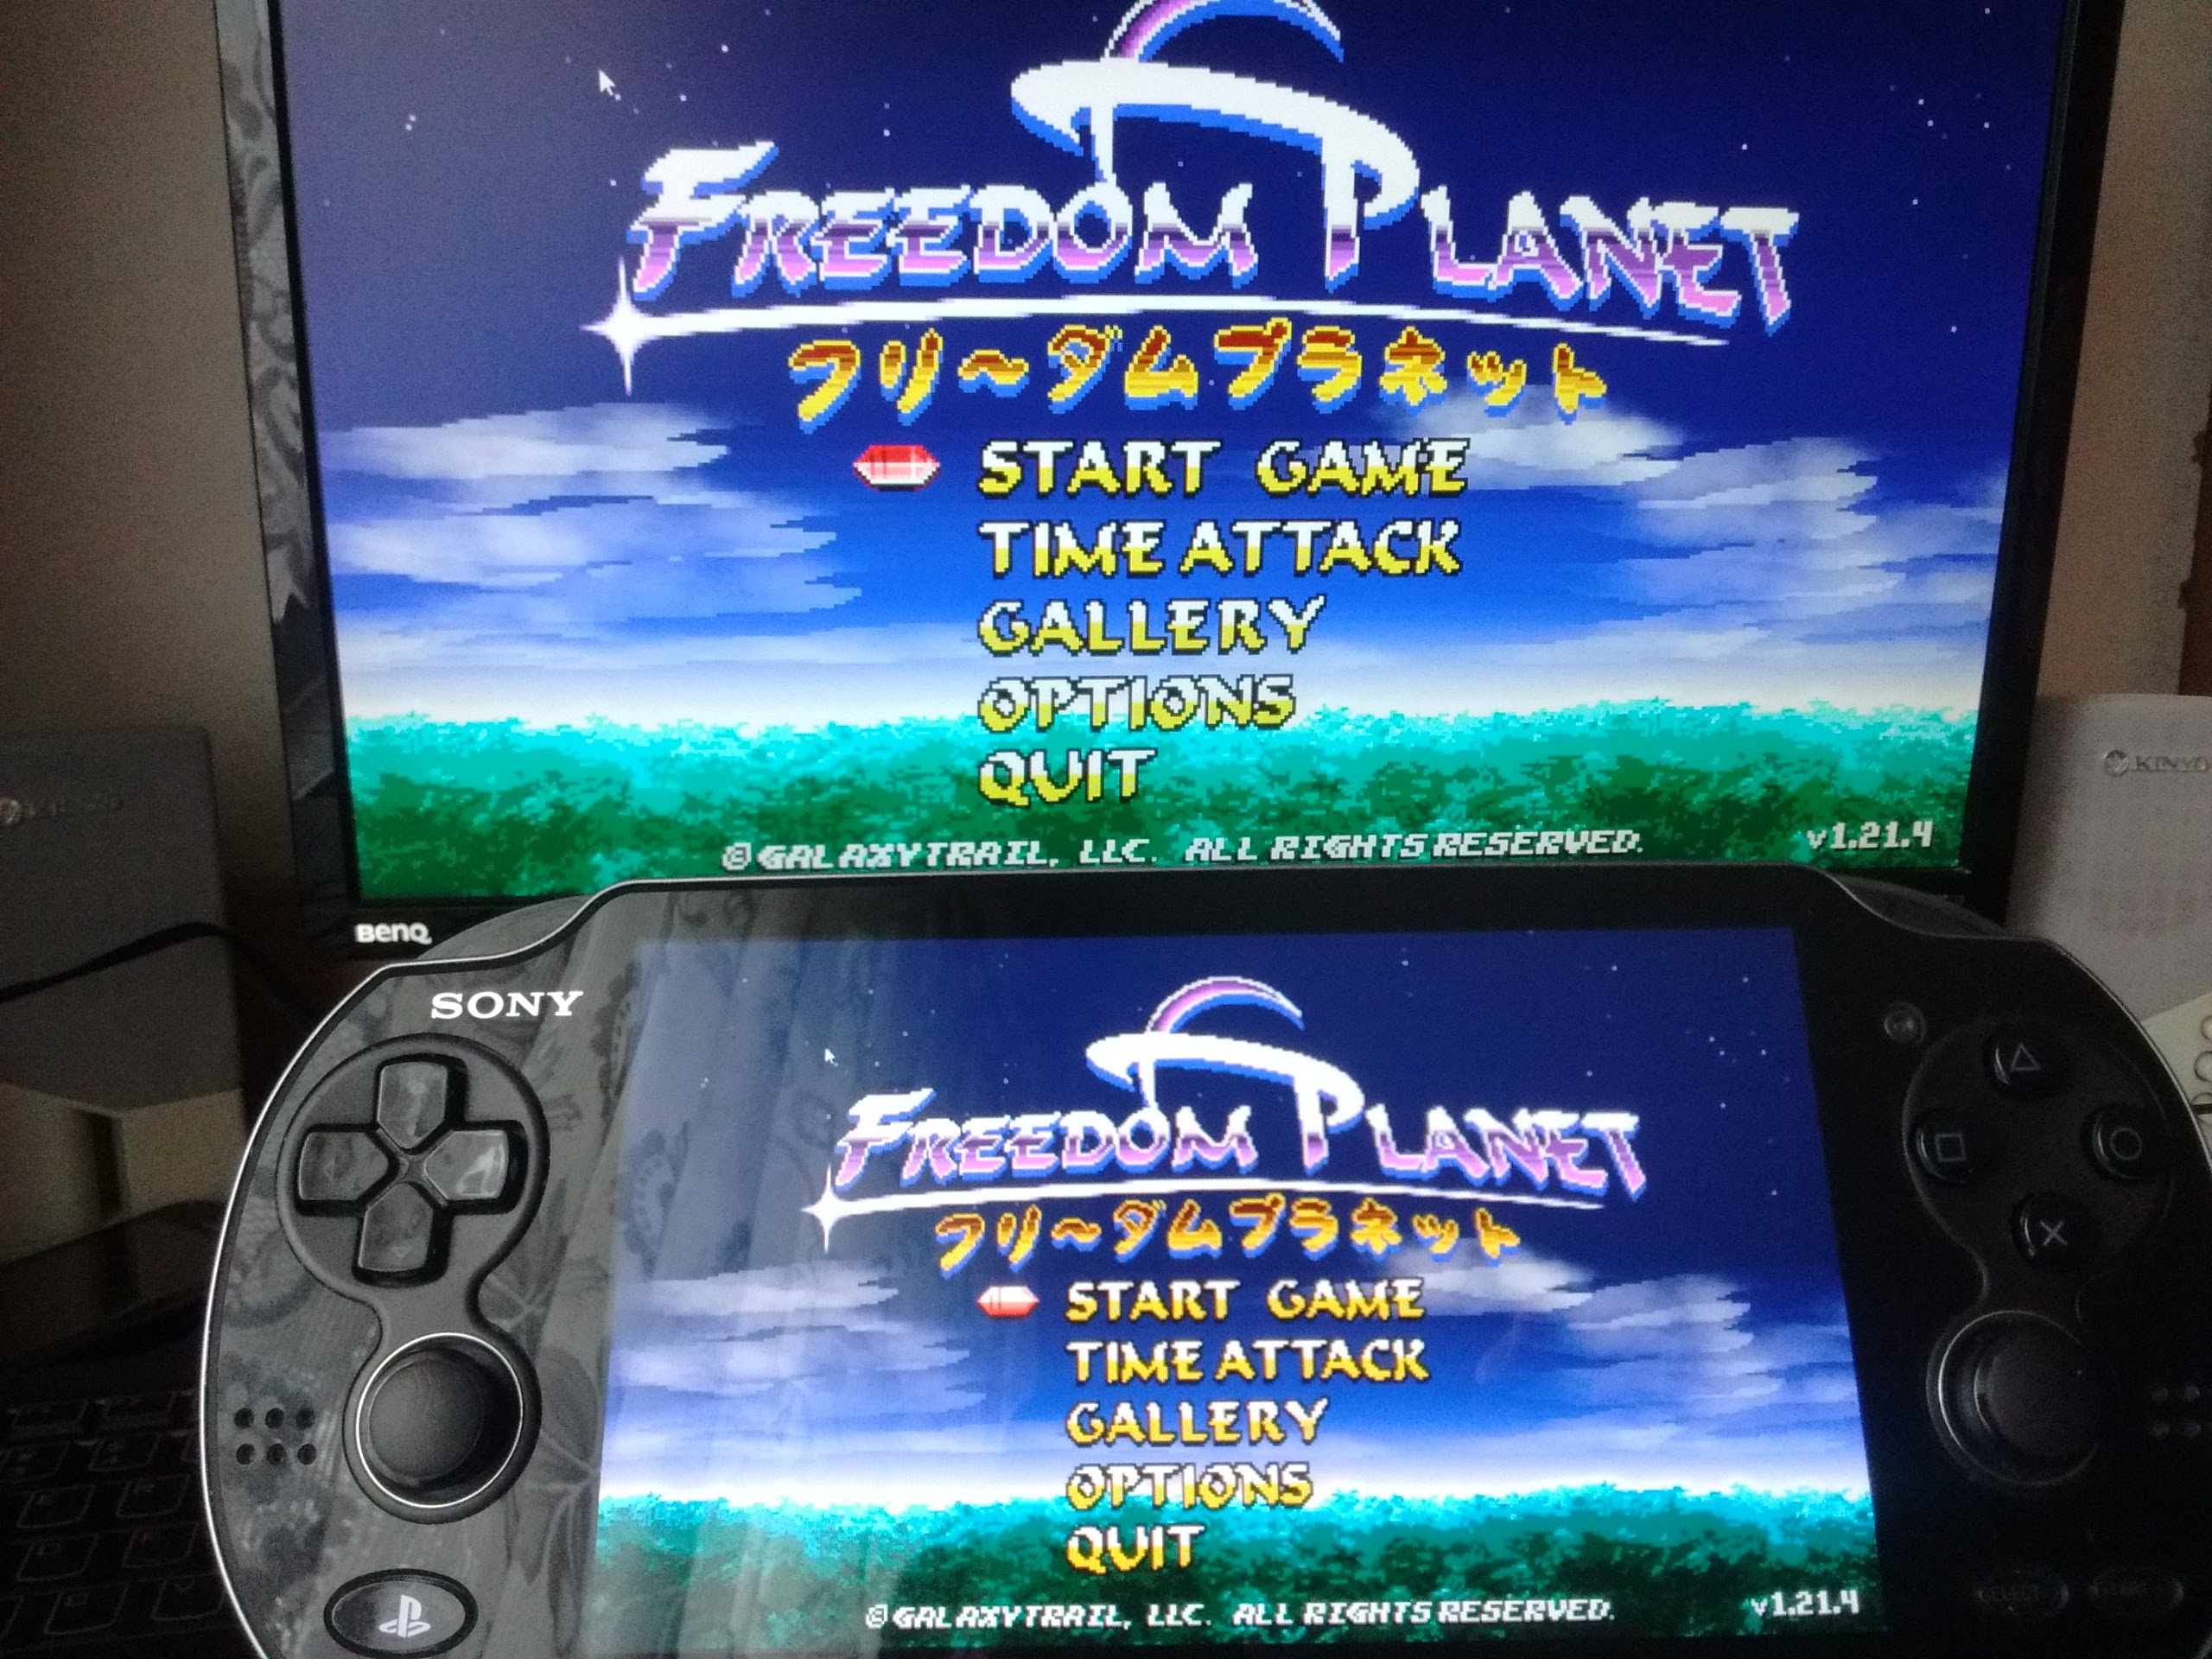 Stream games from your PC to your PS Vita - Moonlight Vita